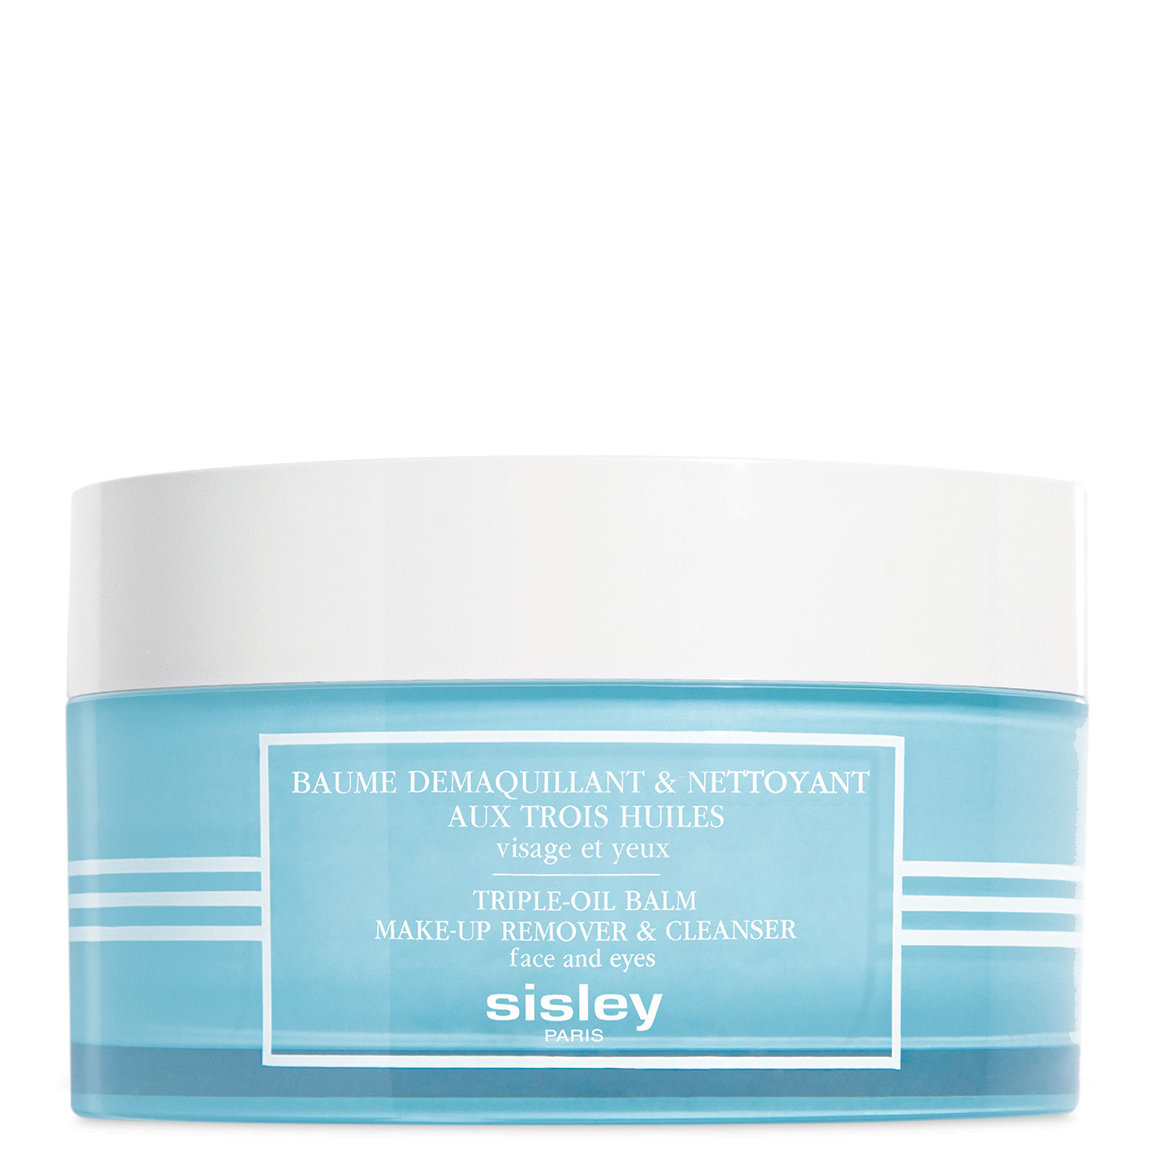 Sisley-Paris Triple-Oil Balm Makeup Remover & Cleanser alternative view 1 - product swatch.